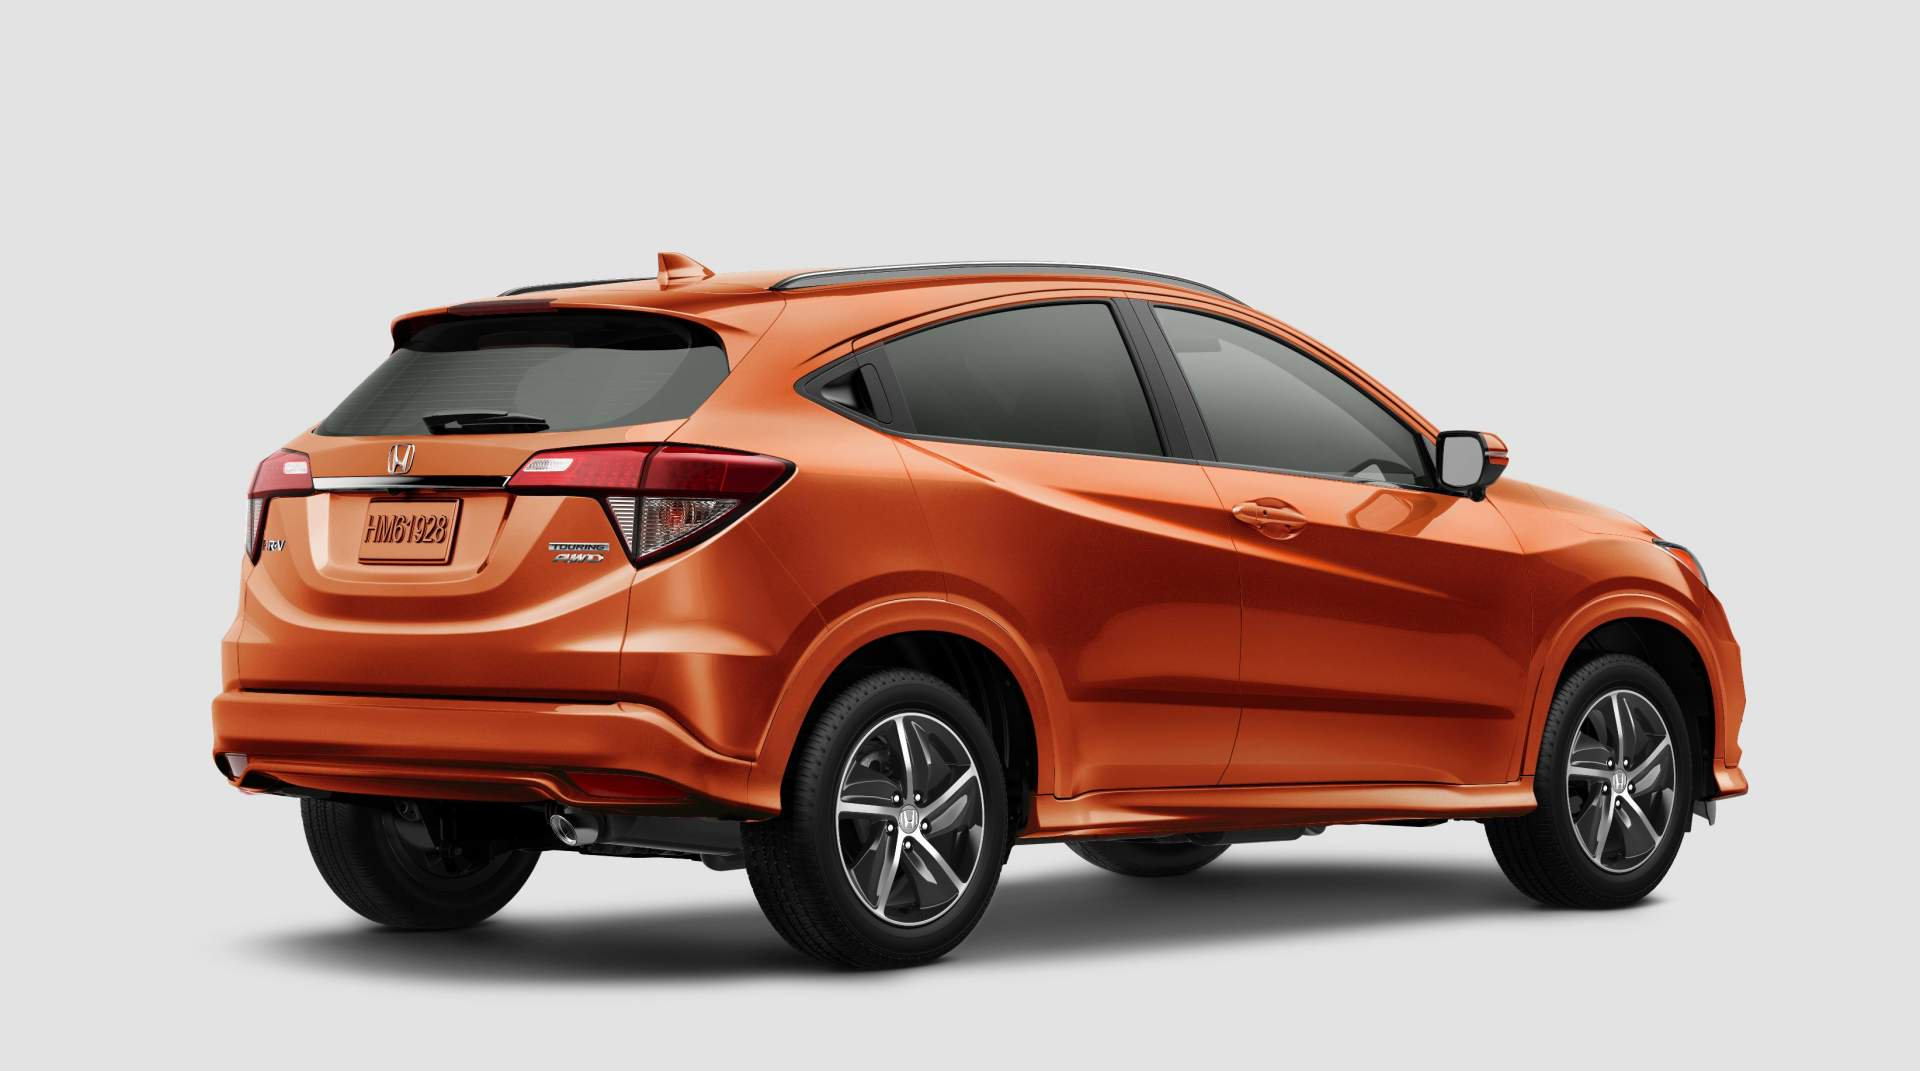 2019 Honda HR-V: Updates, Design, Price >> 2019 Honda Hr V Updates Design Price Upcoming New Car Release 2020